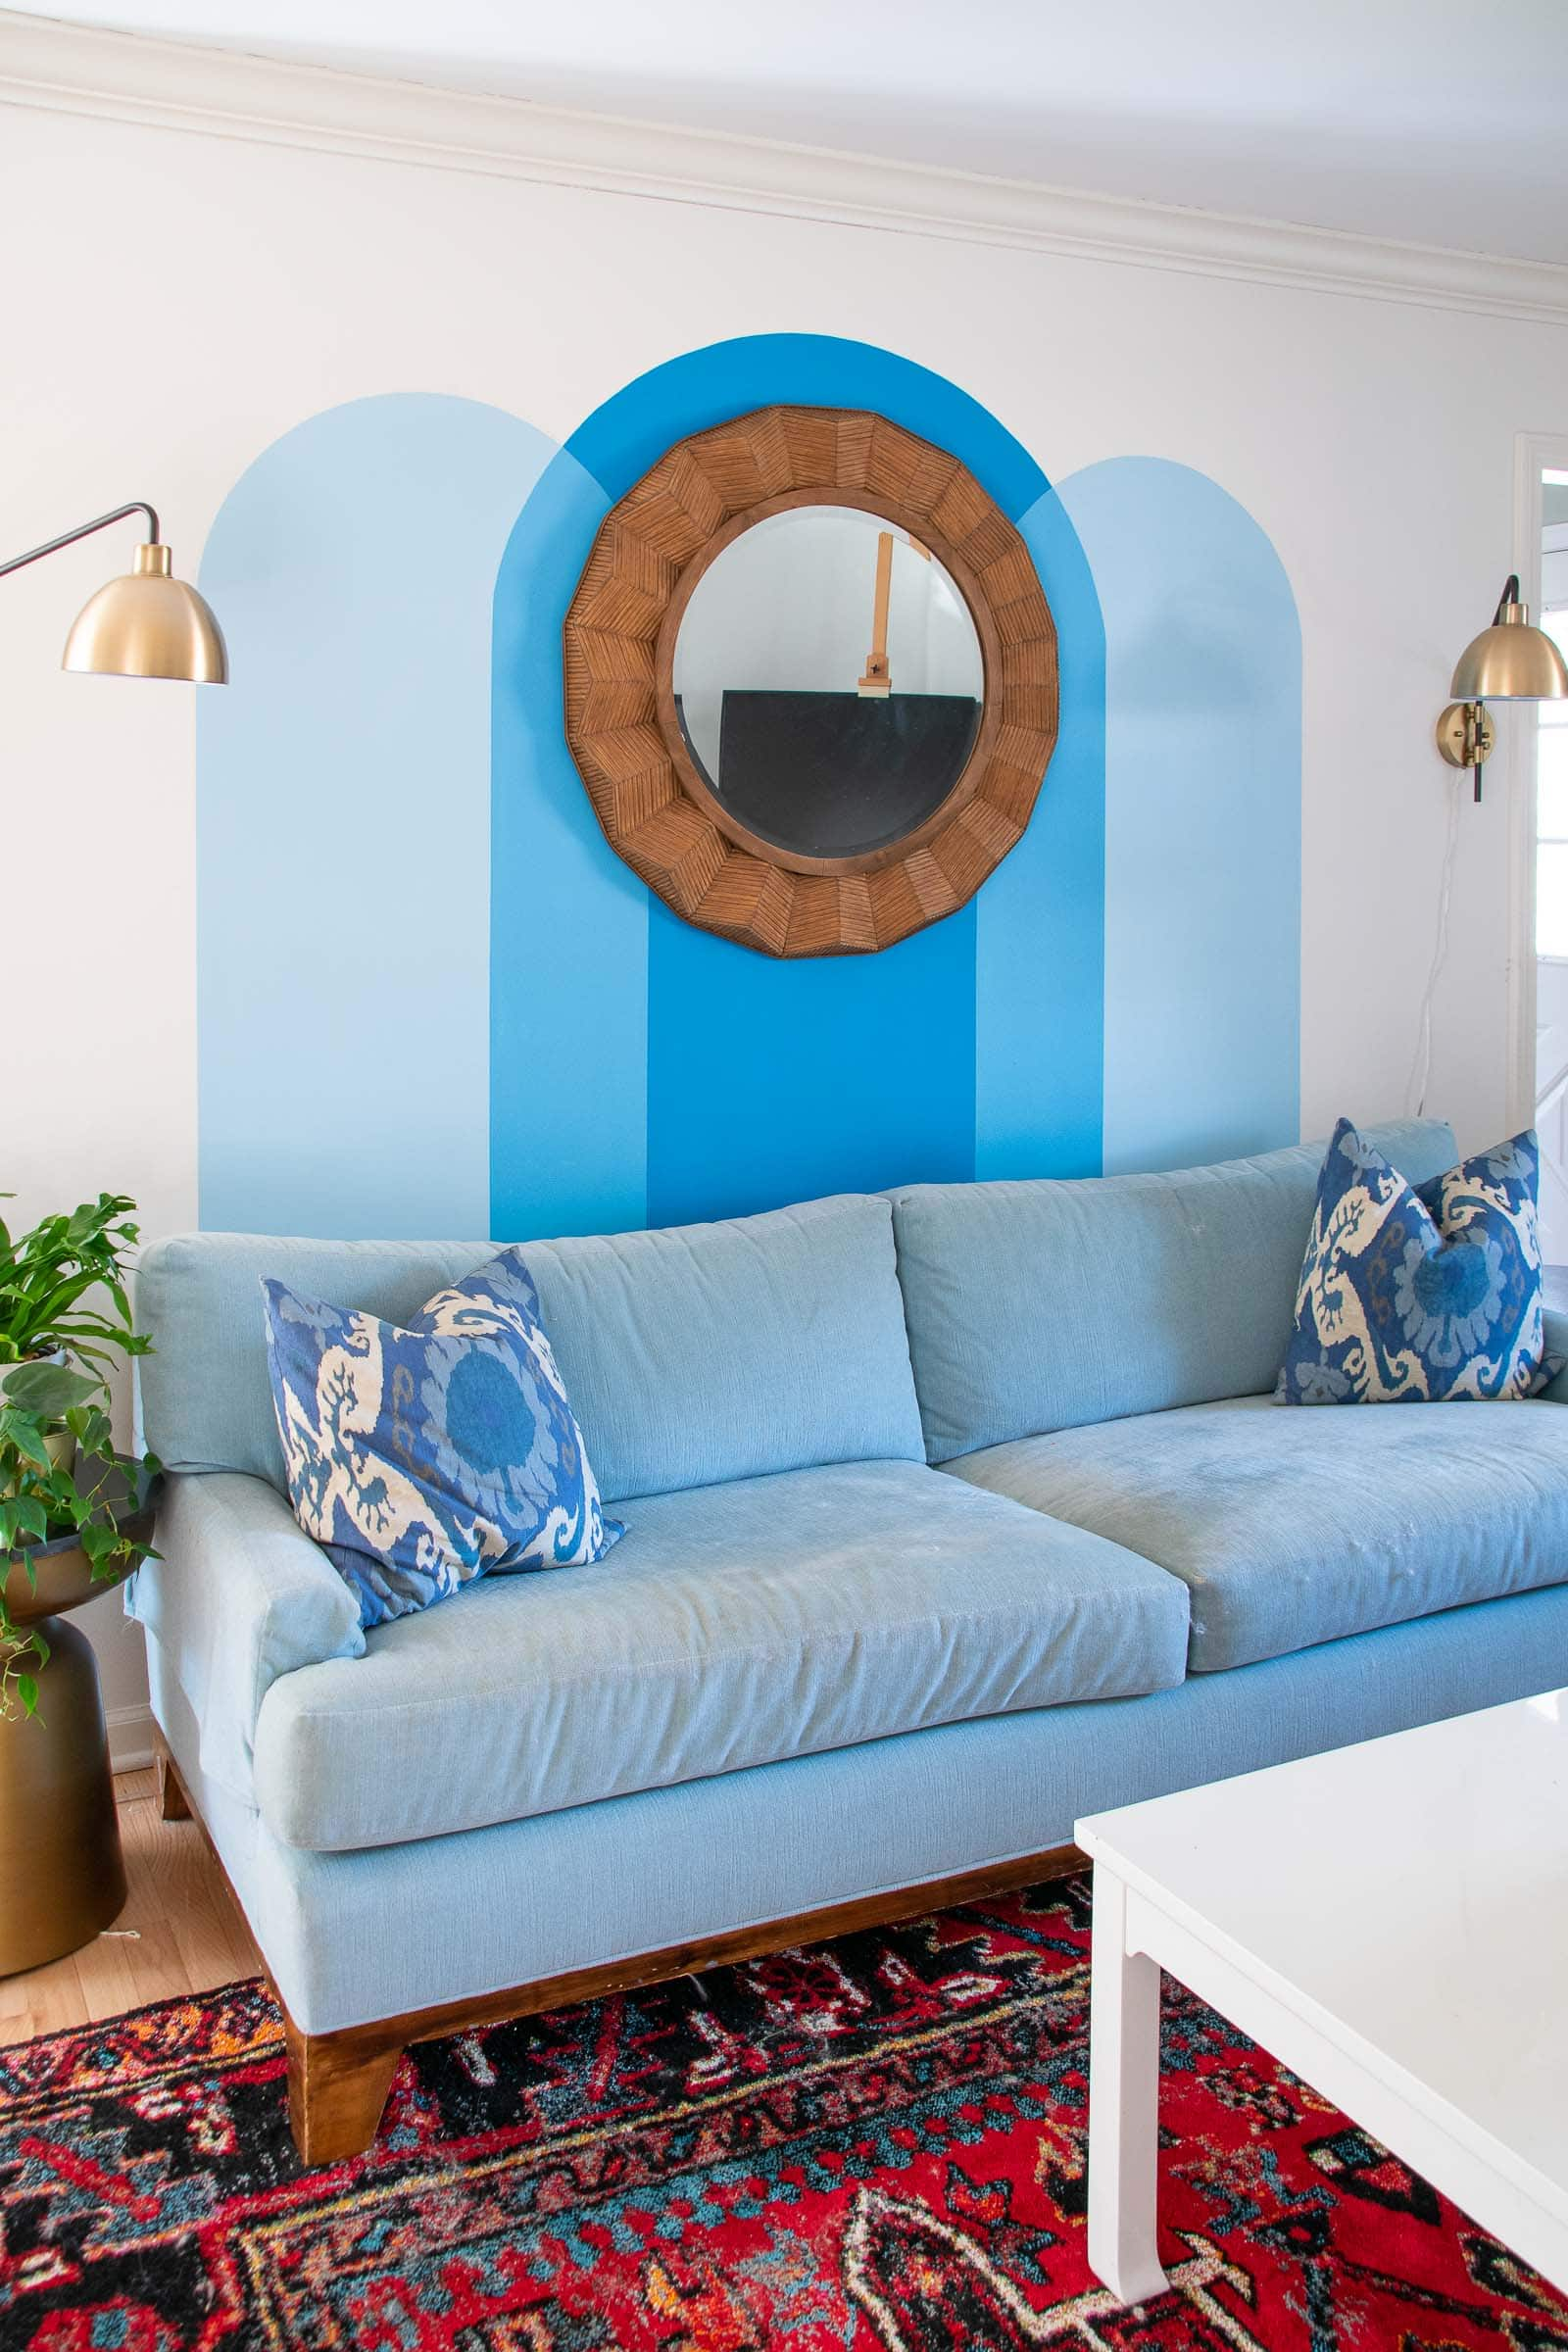 painted arch wall mural